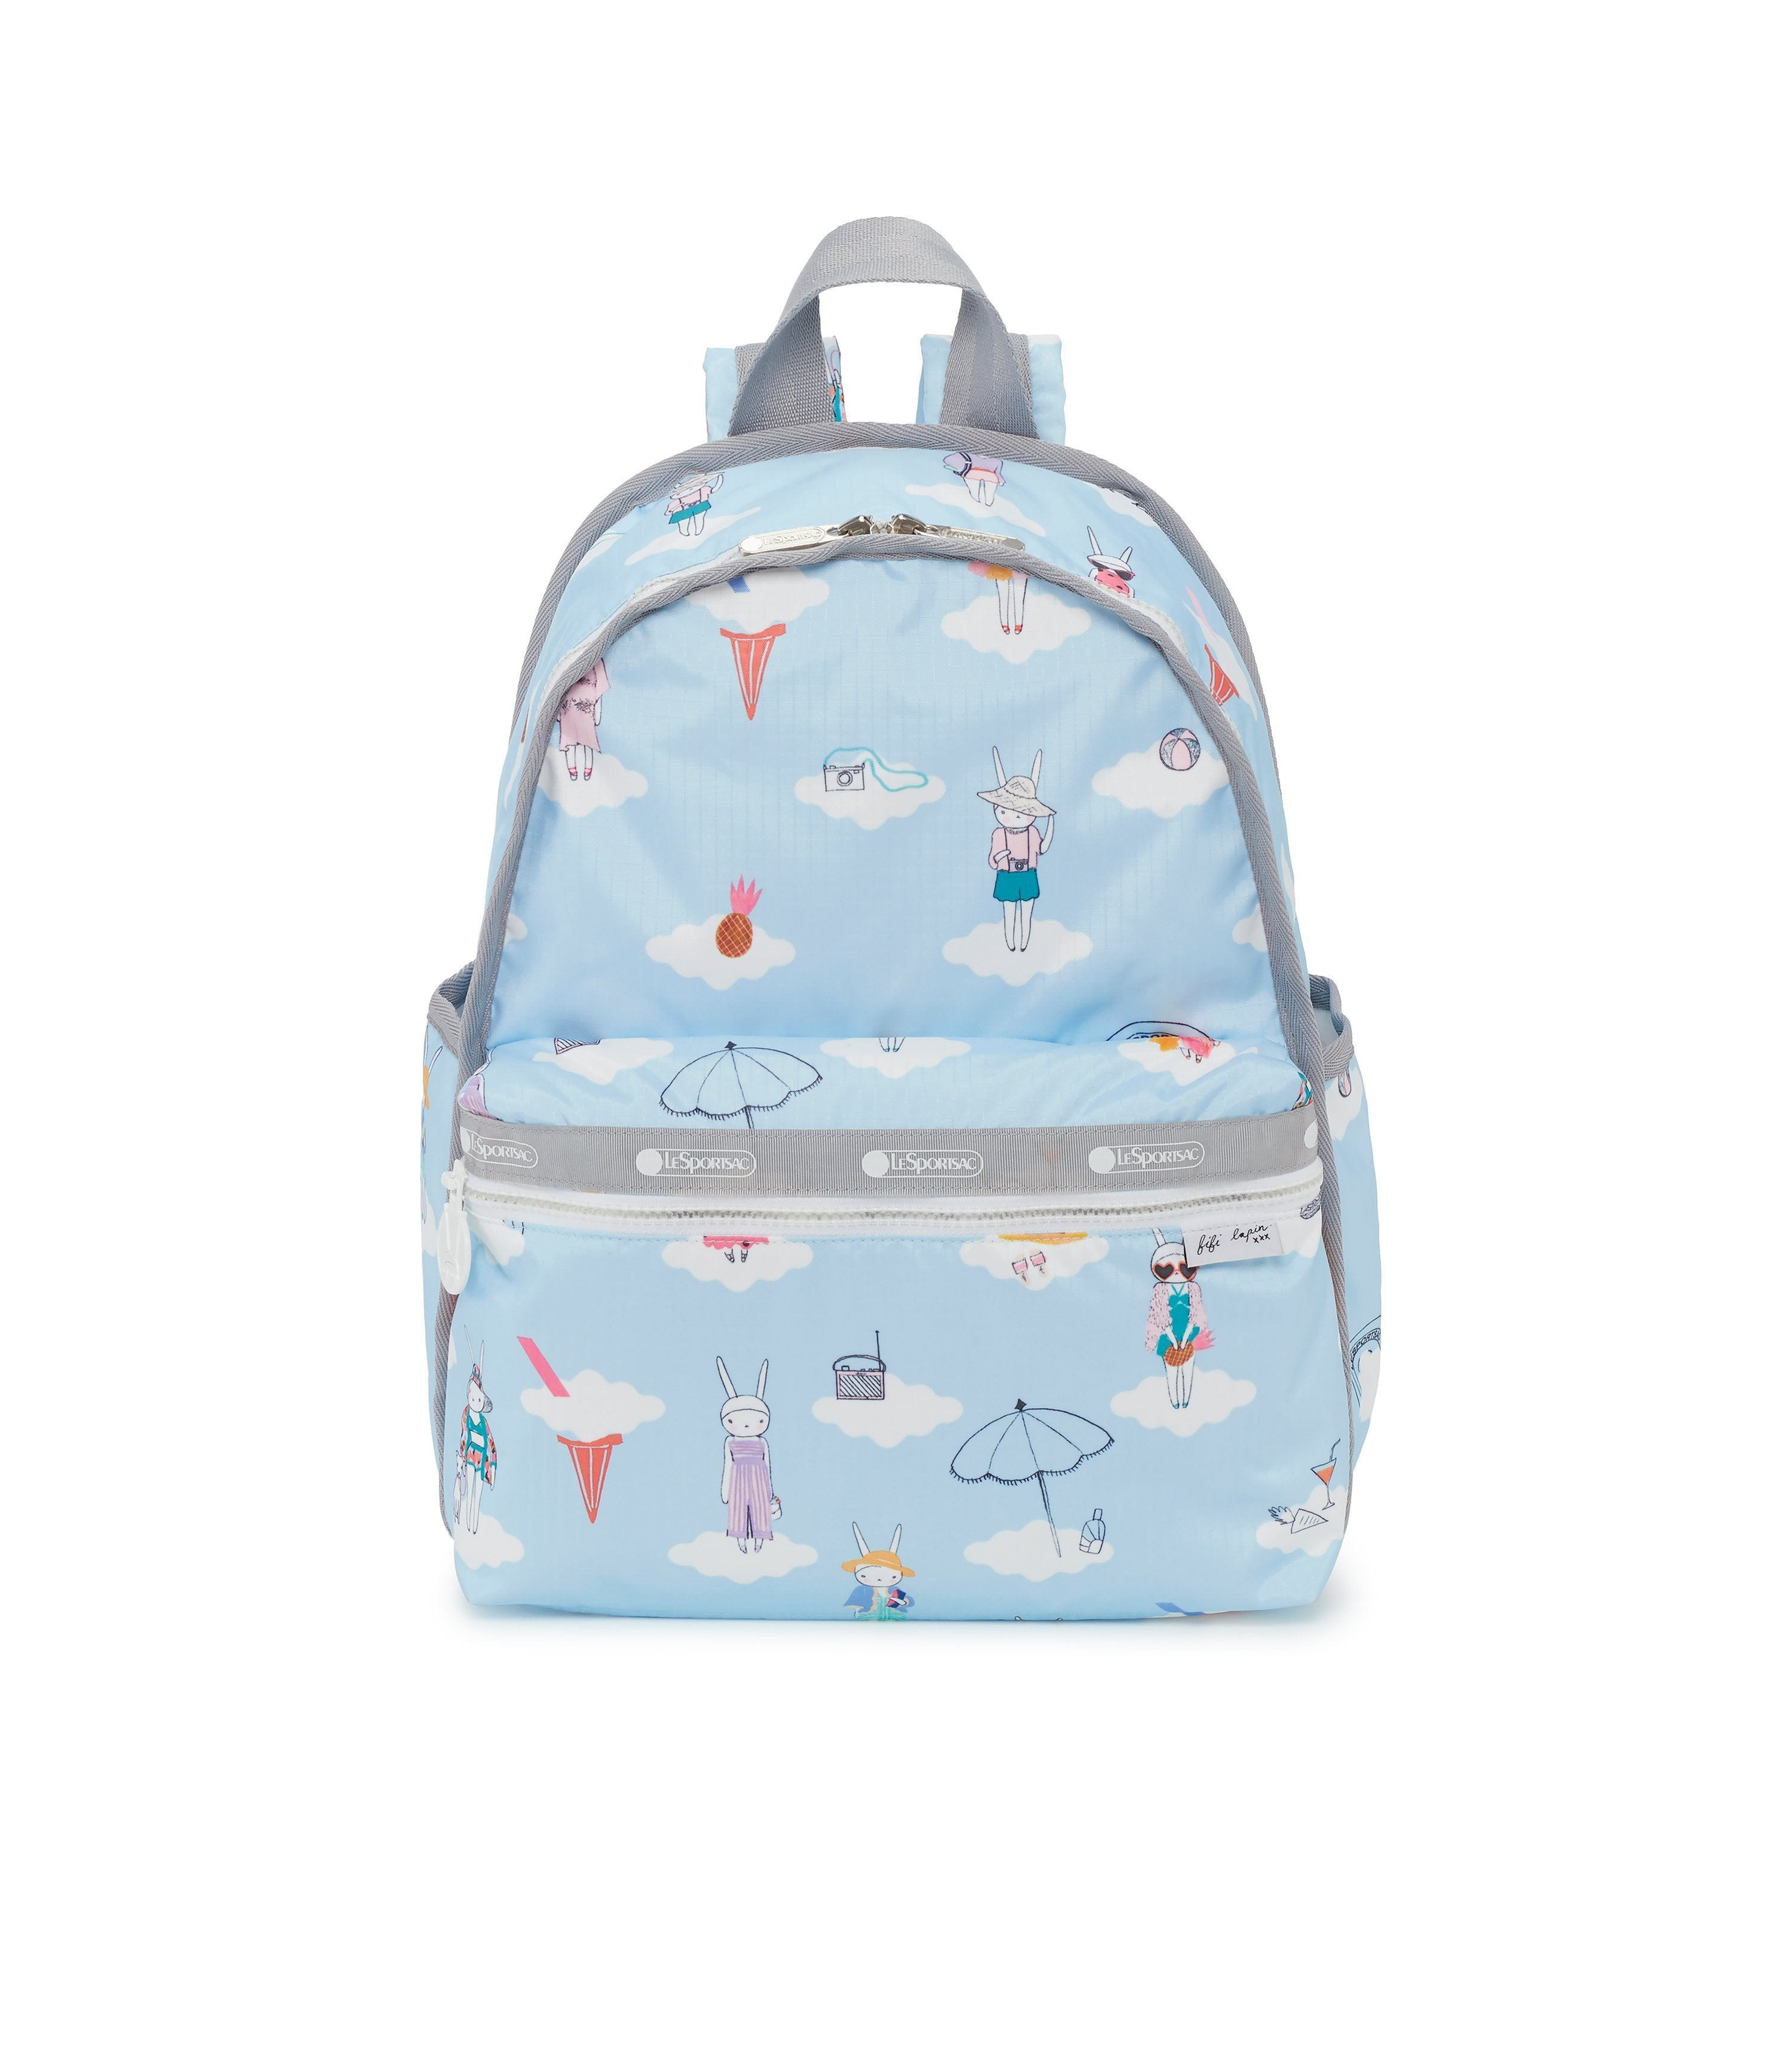 Basic Backpack, Fifi Lapin, Sky Blue Bookbag, Bunny, Clouds, Day Dreaming print